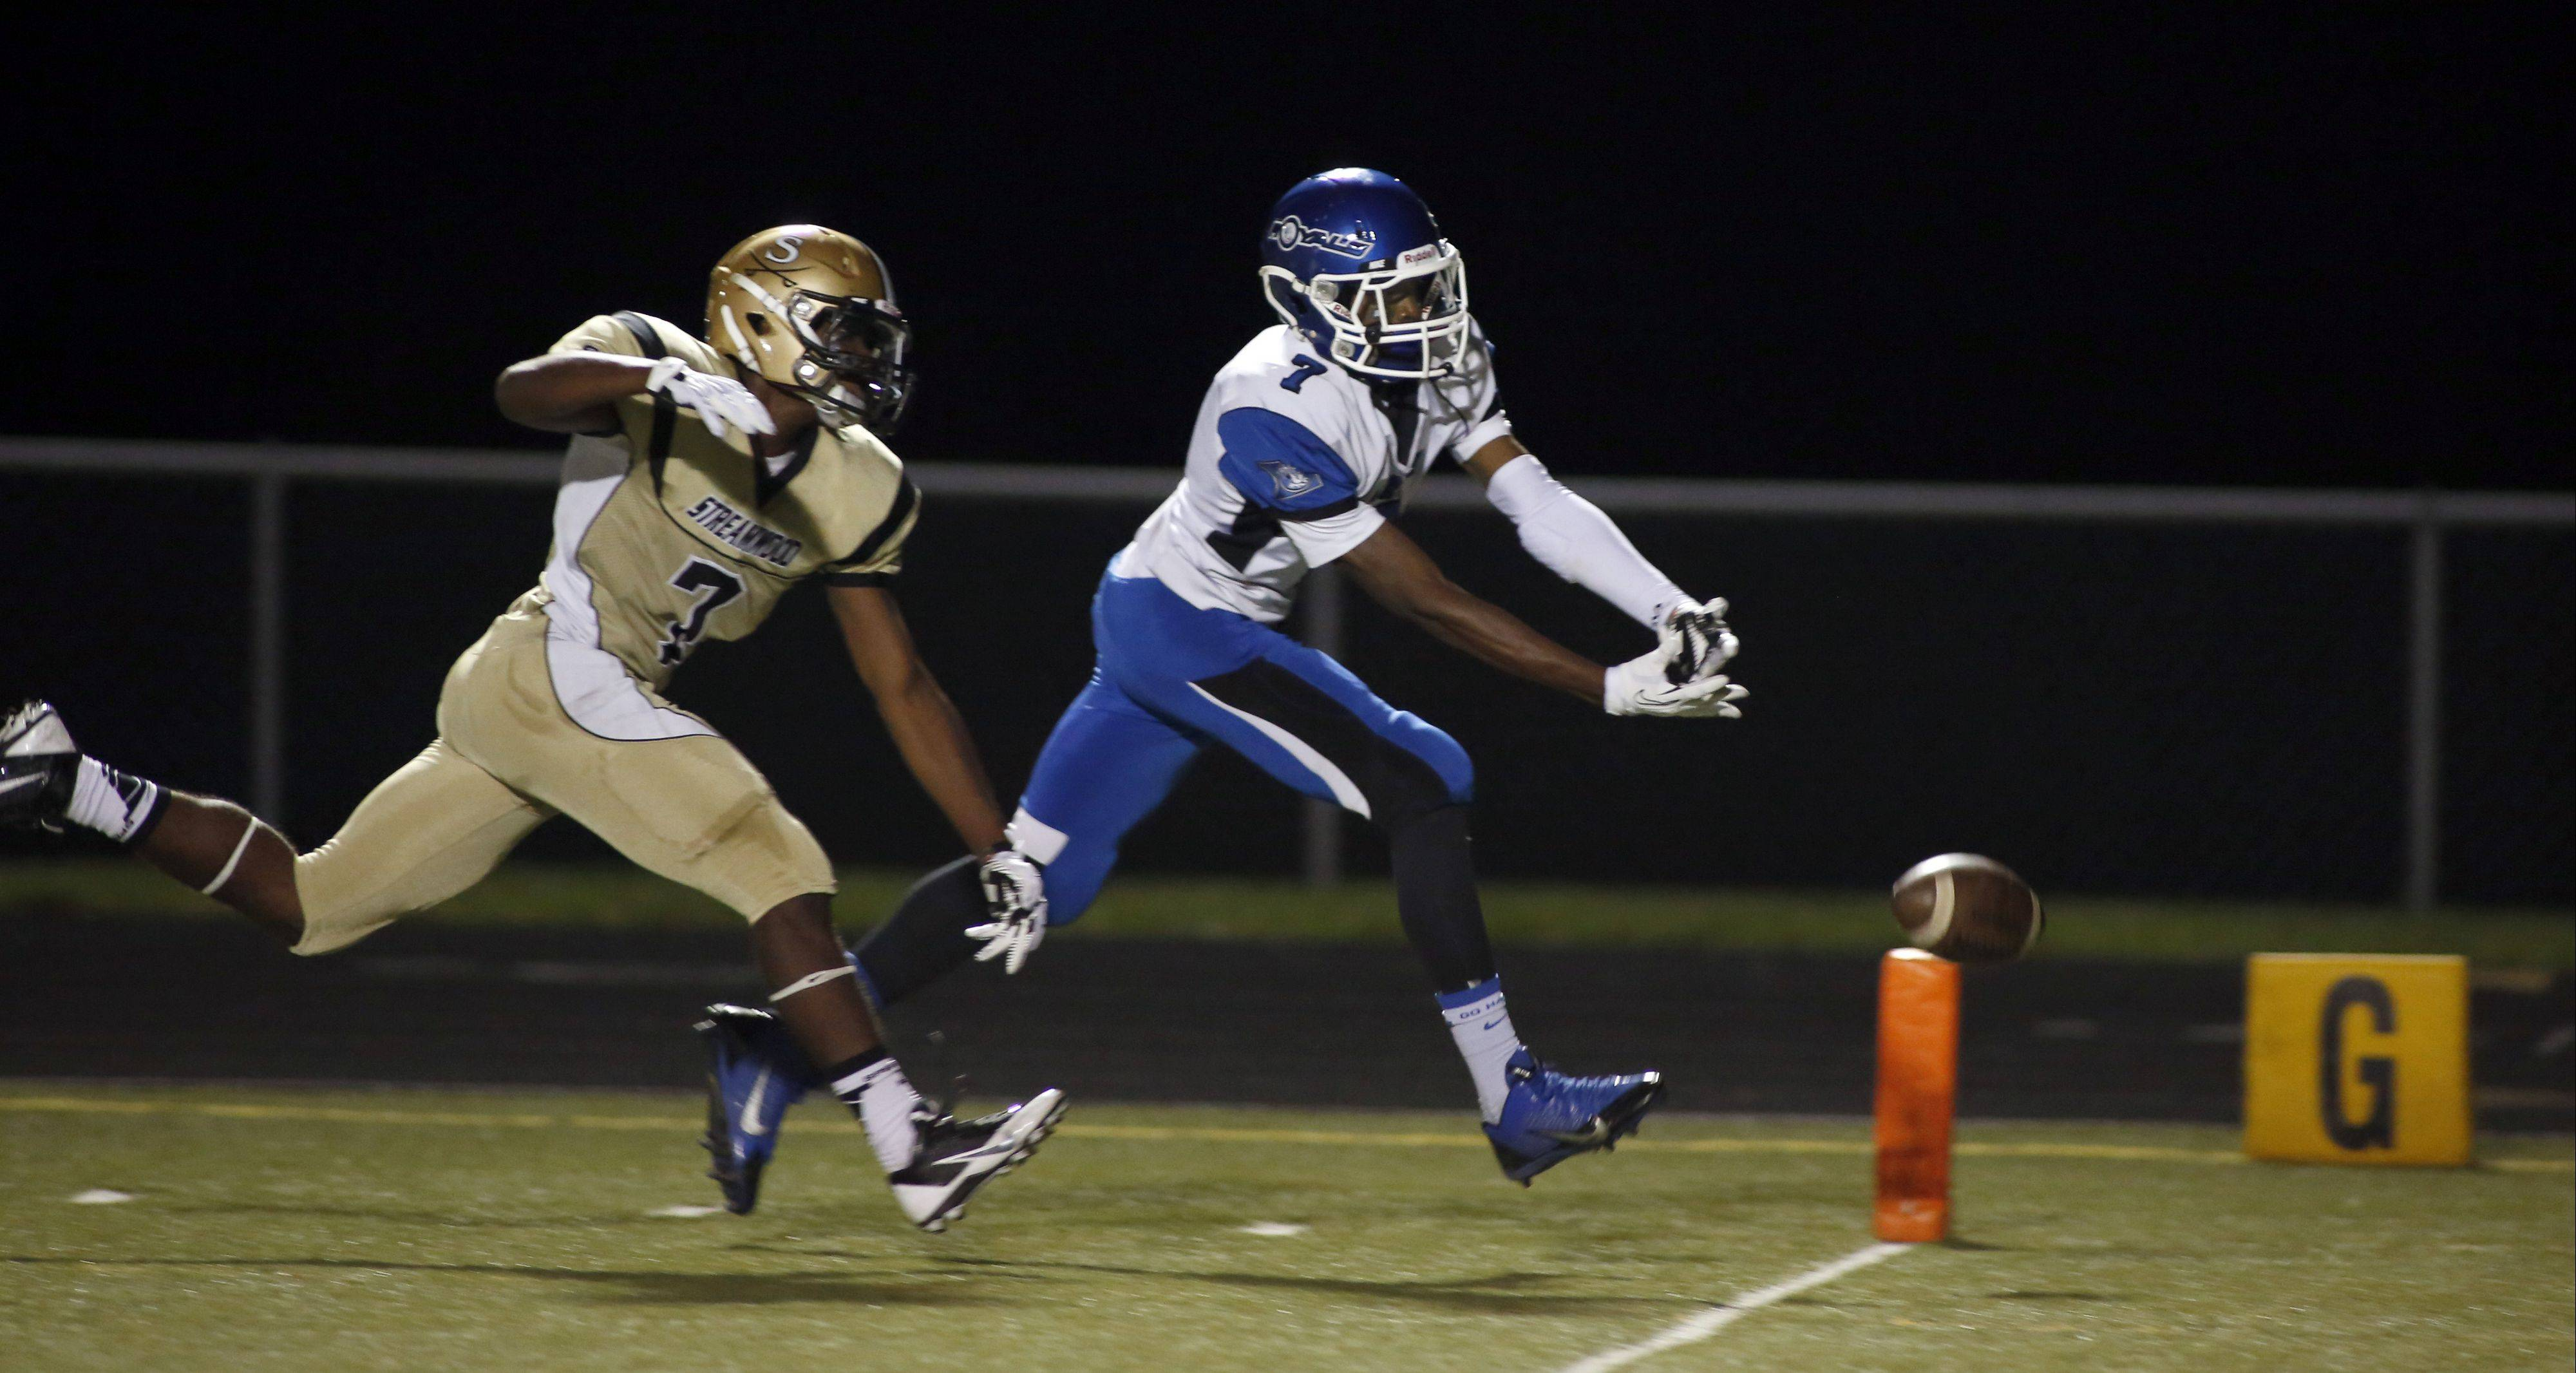 Streamwood's Cody Jayko, left, tries to defend a pass to Larkin's Dante Bonds on Friday.